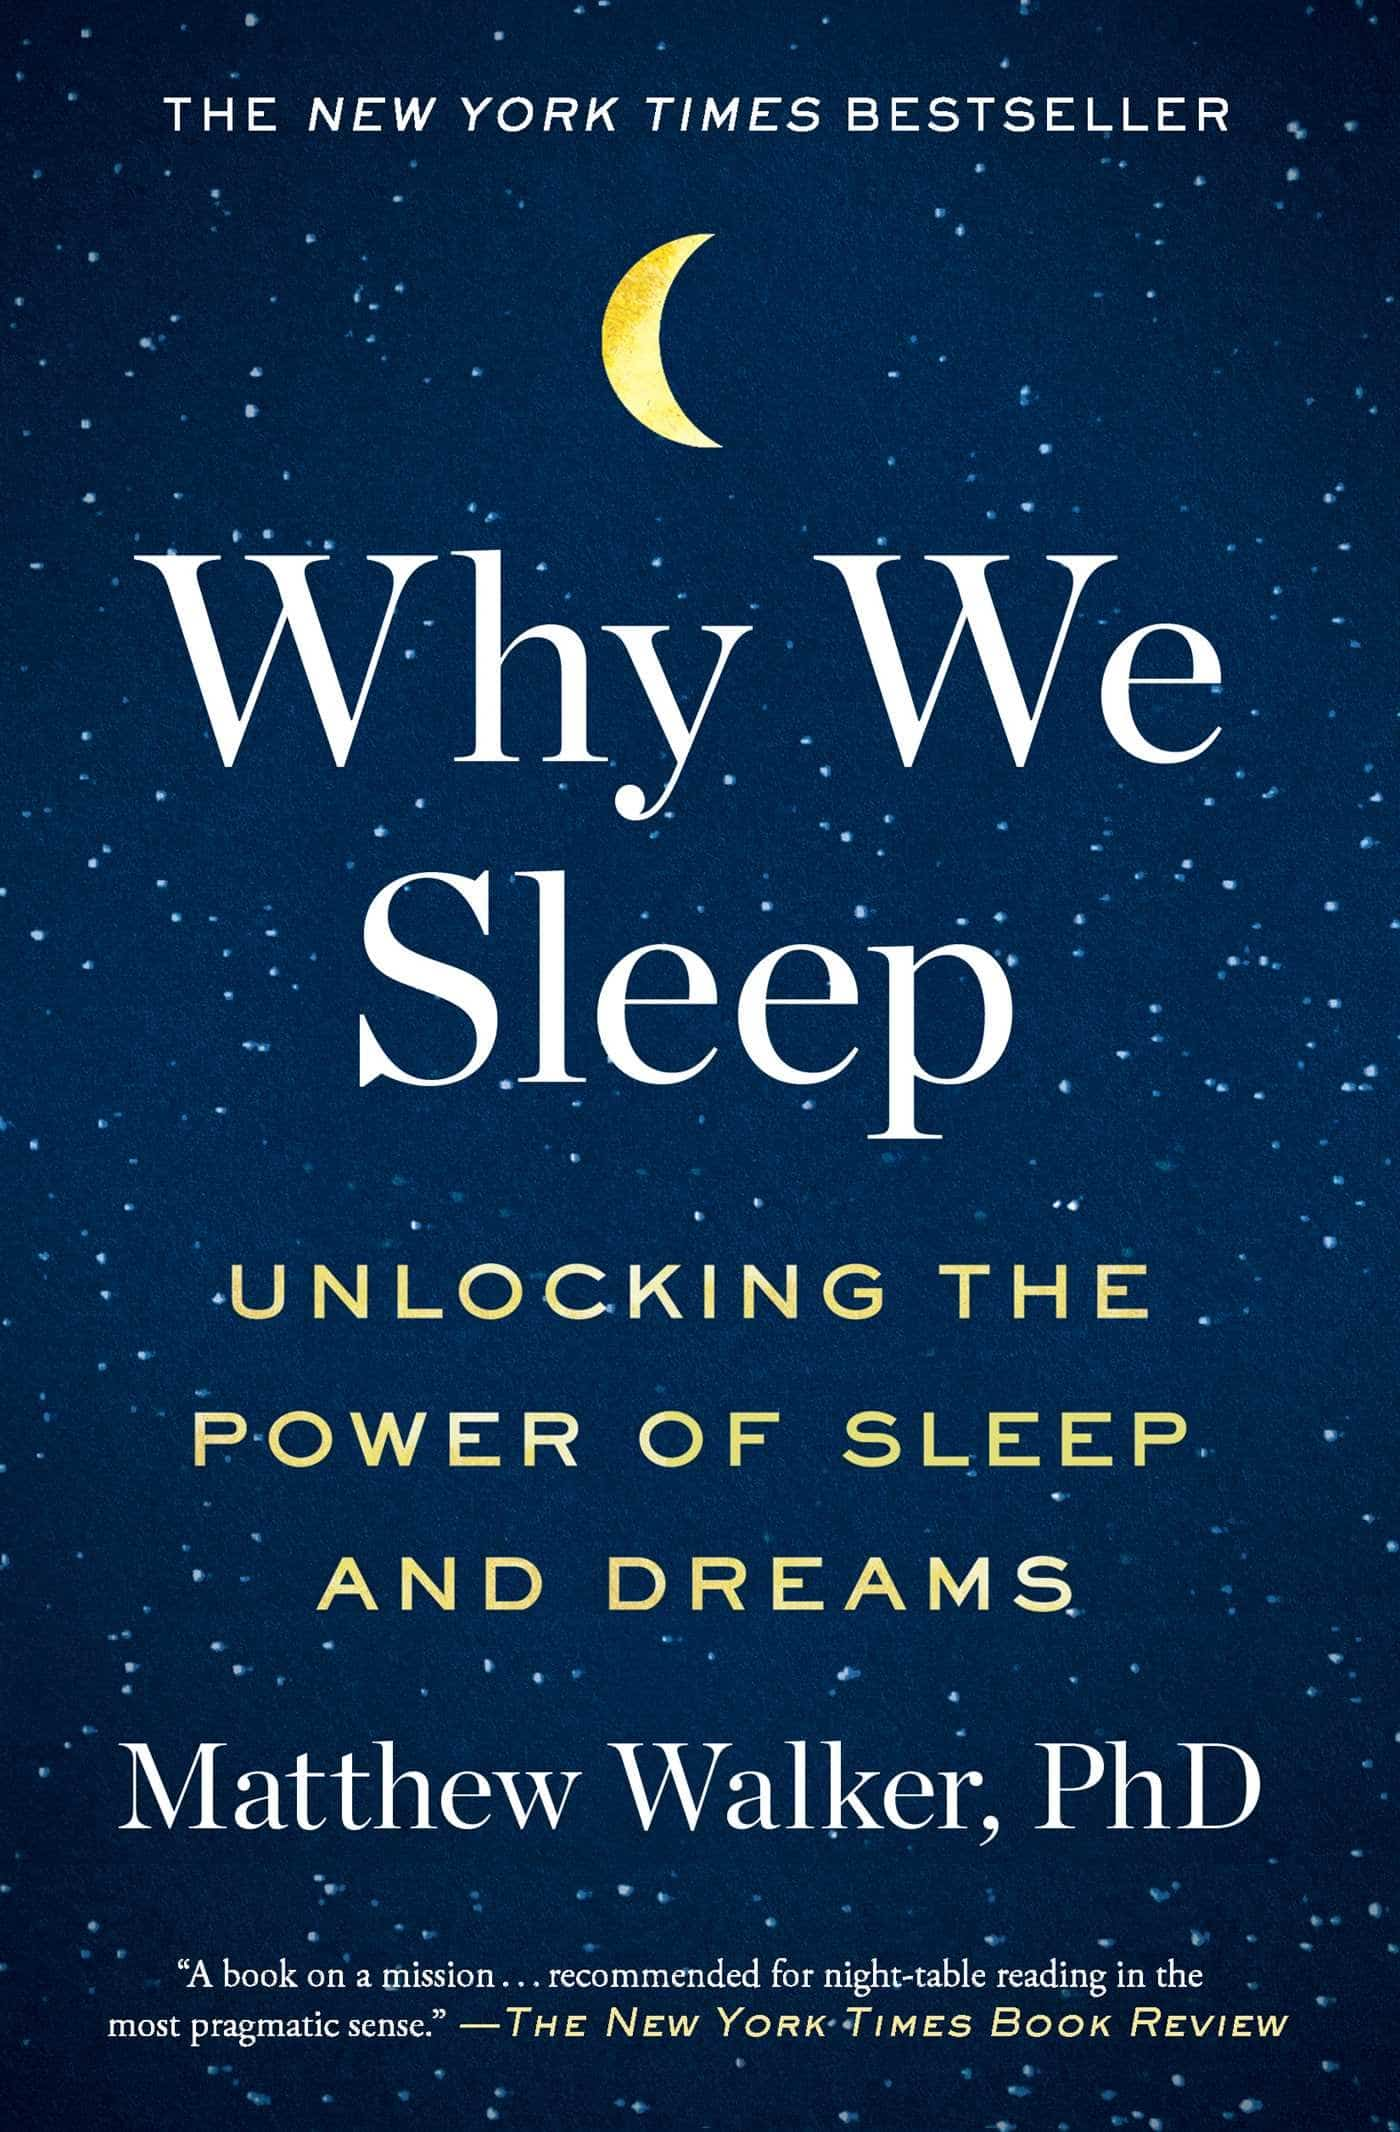 The cover of Why We Sleep